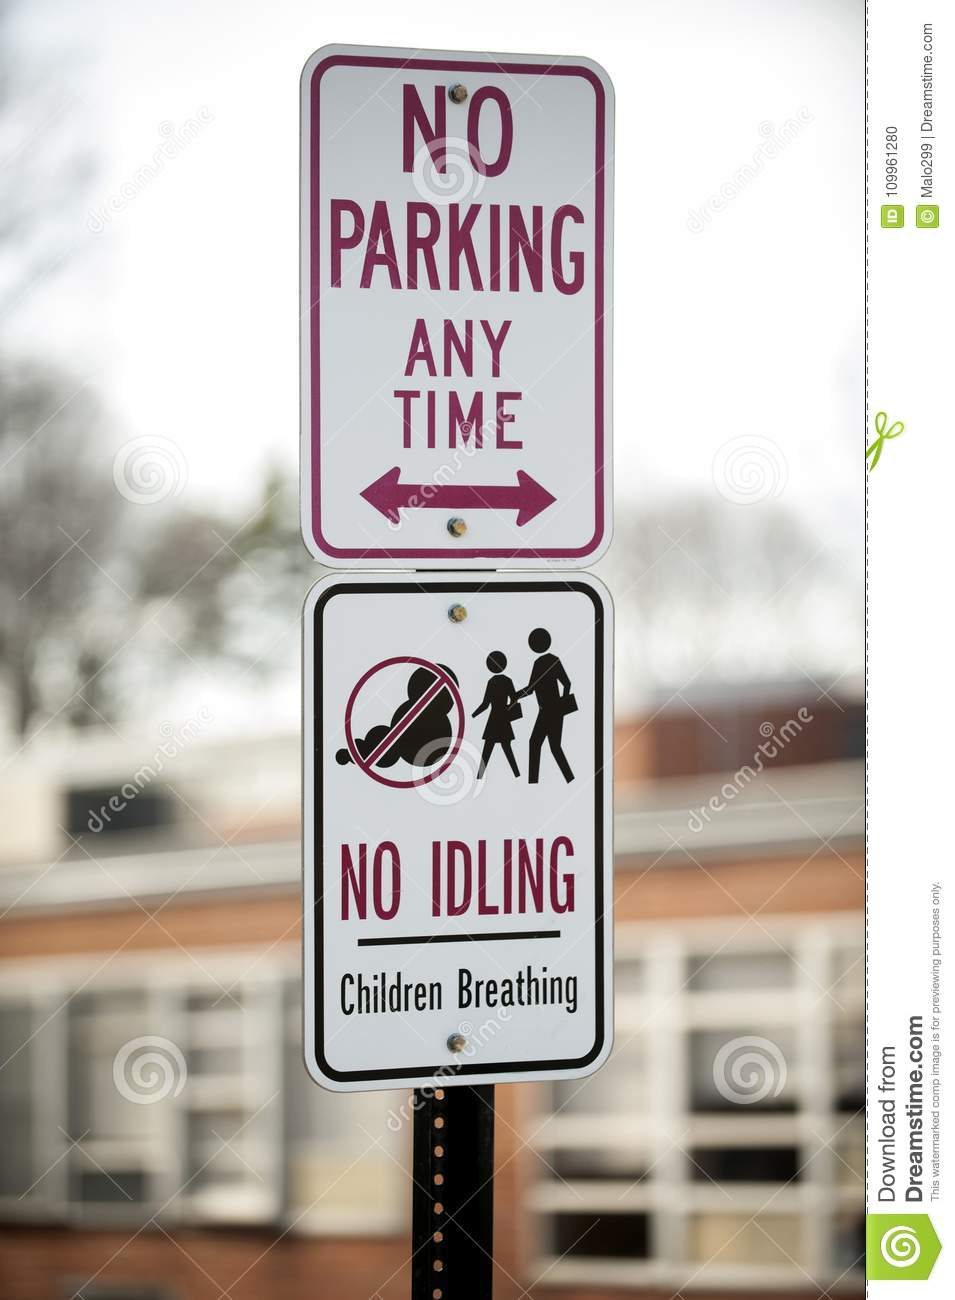 Signs outside of school